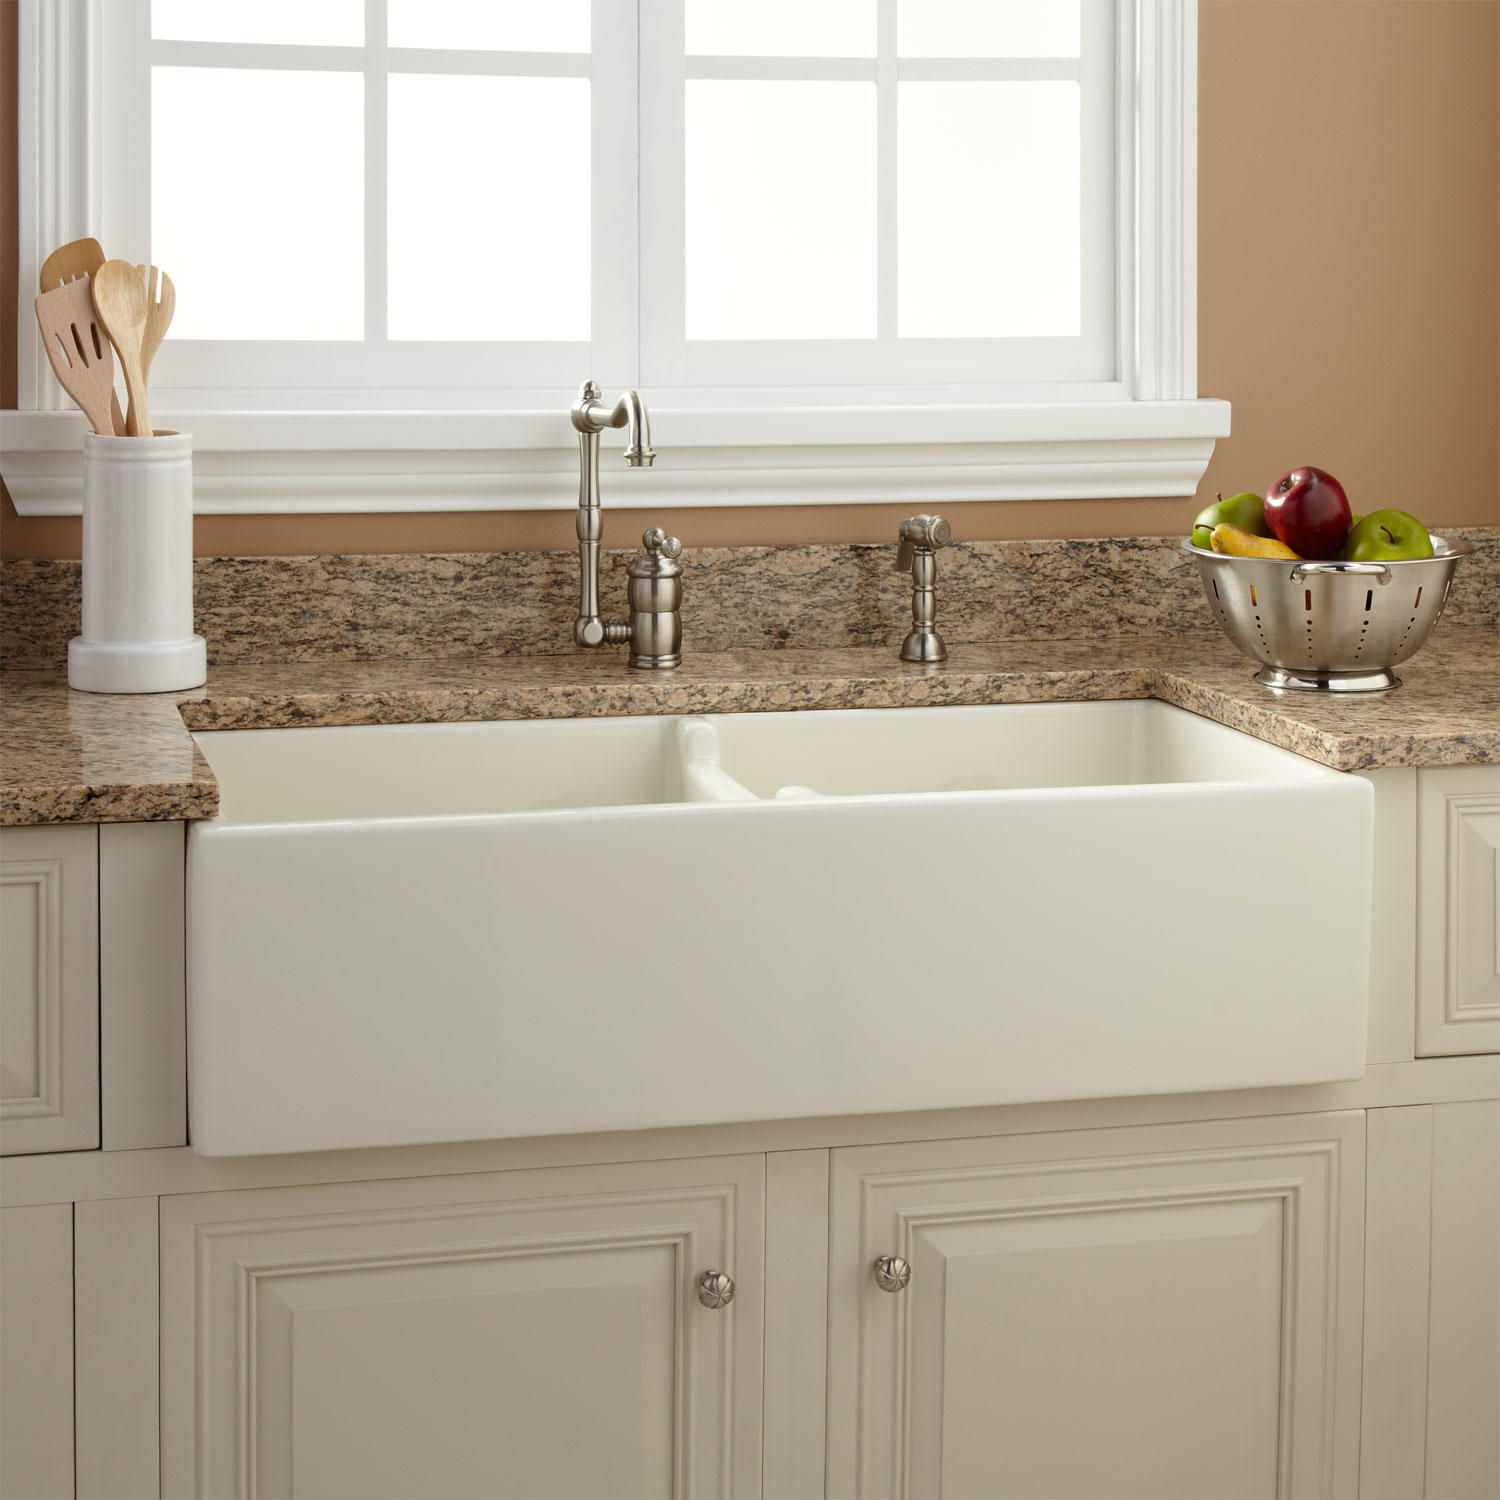 Risinger Sink >> 36 Risinger 60 40 Offset Bowl Fireclay Farmhouse Sink Smooth